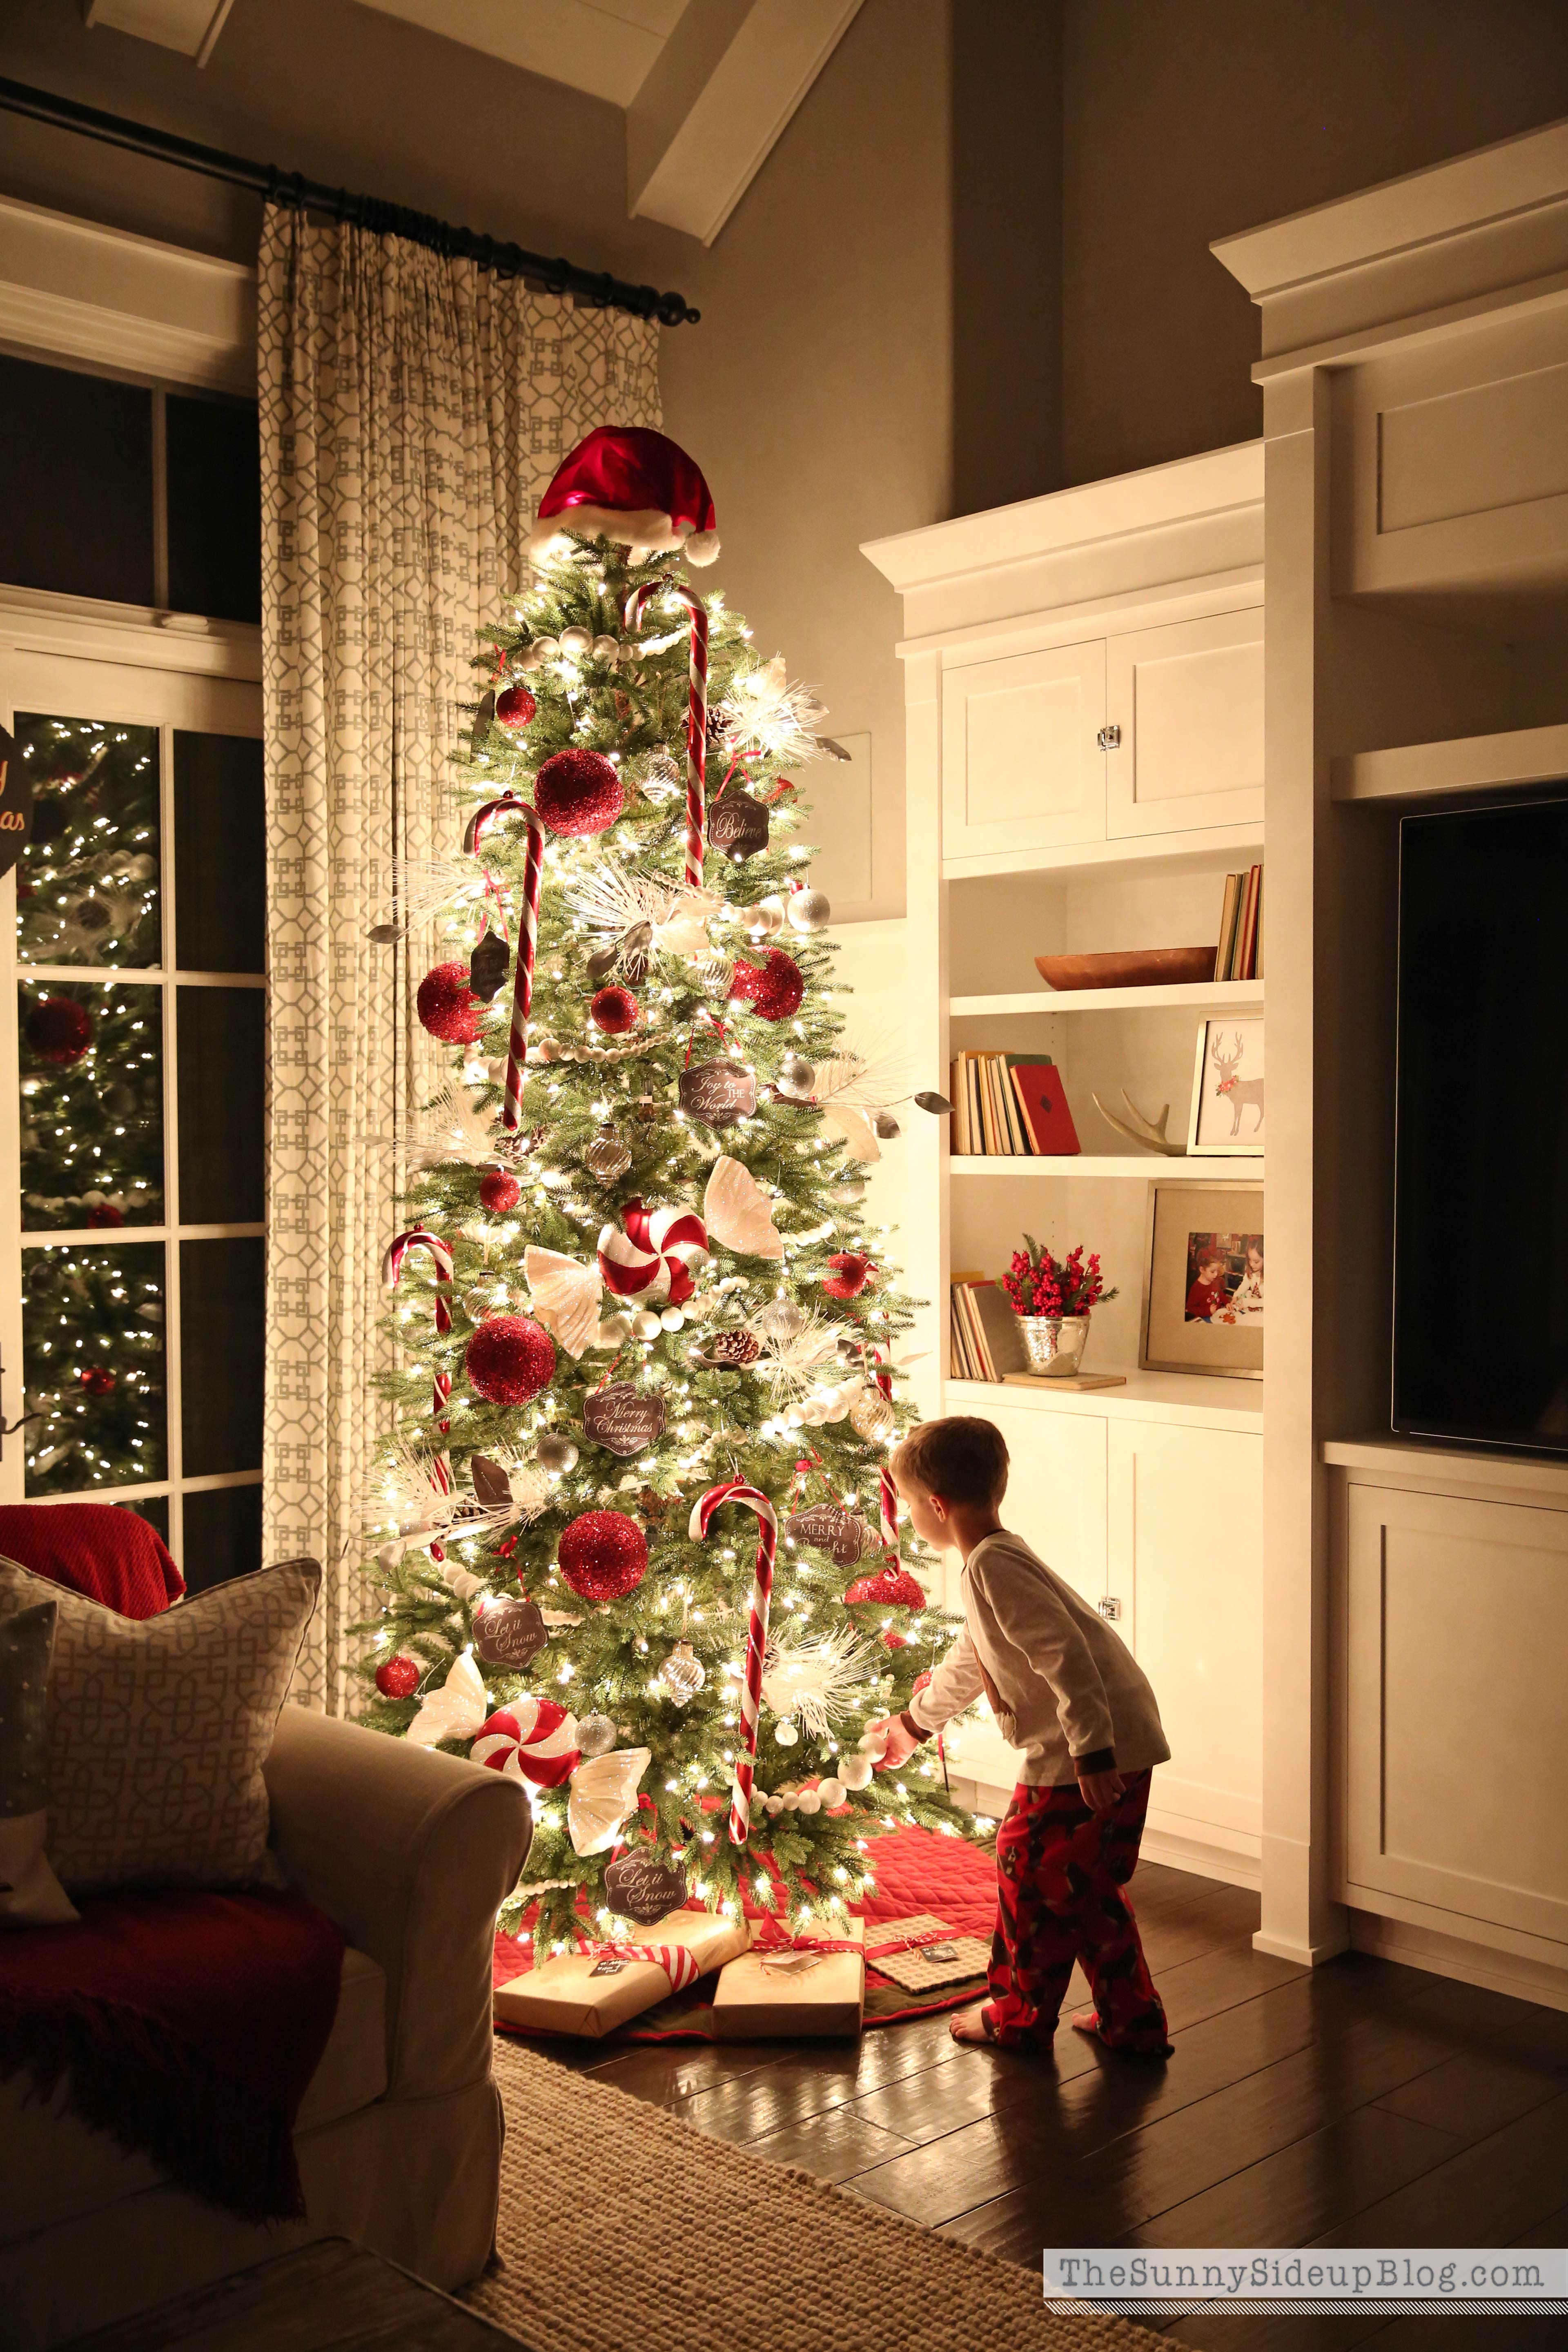 red-and-white-candy-cane-christmas-tree